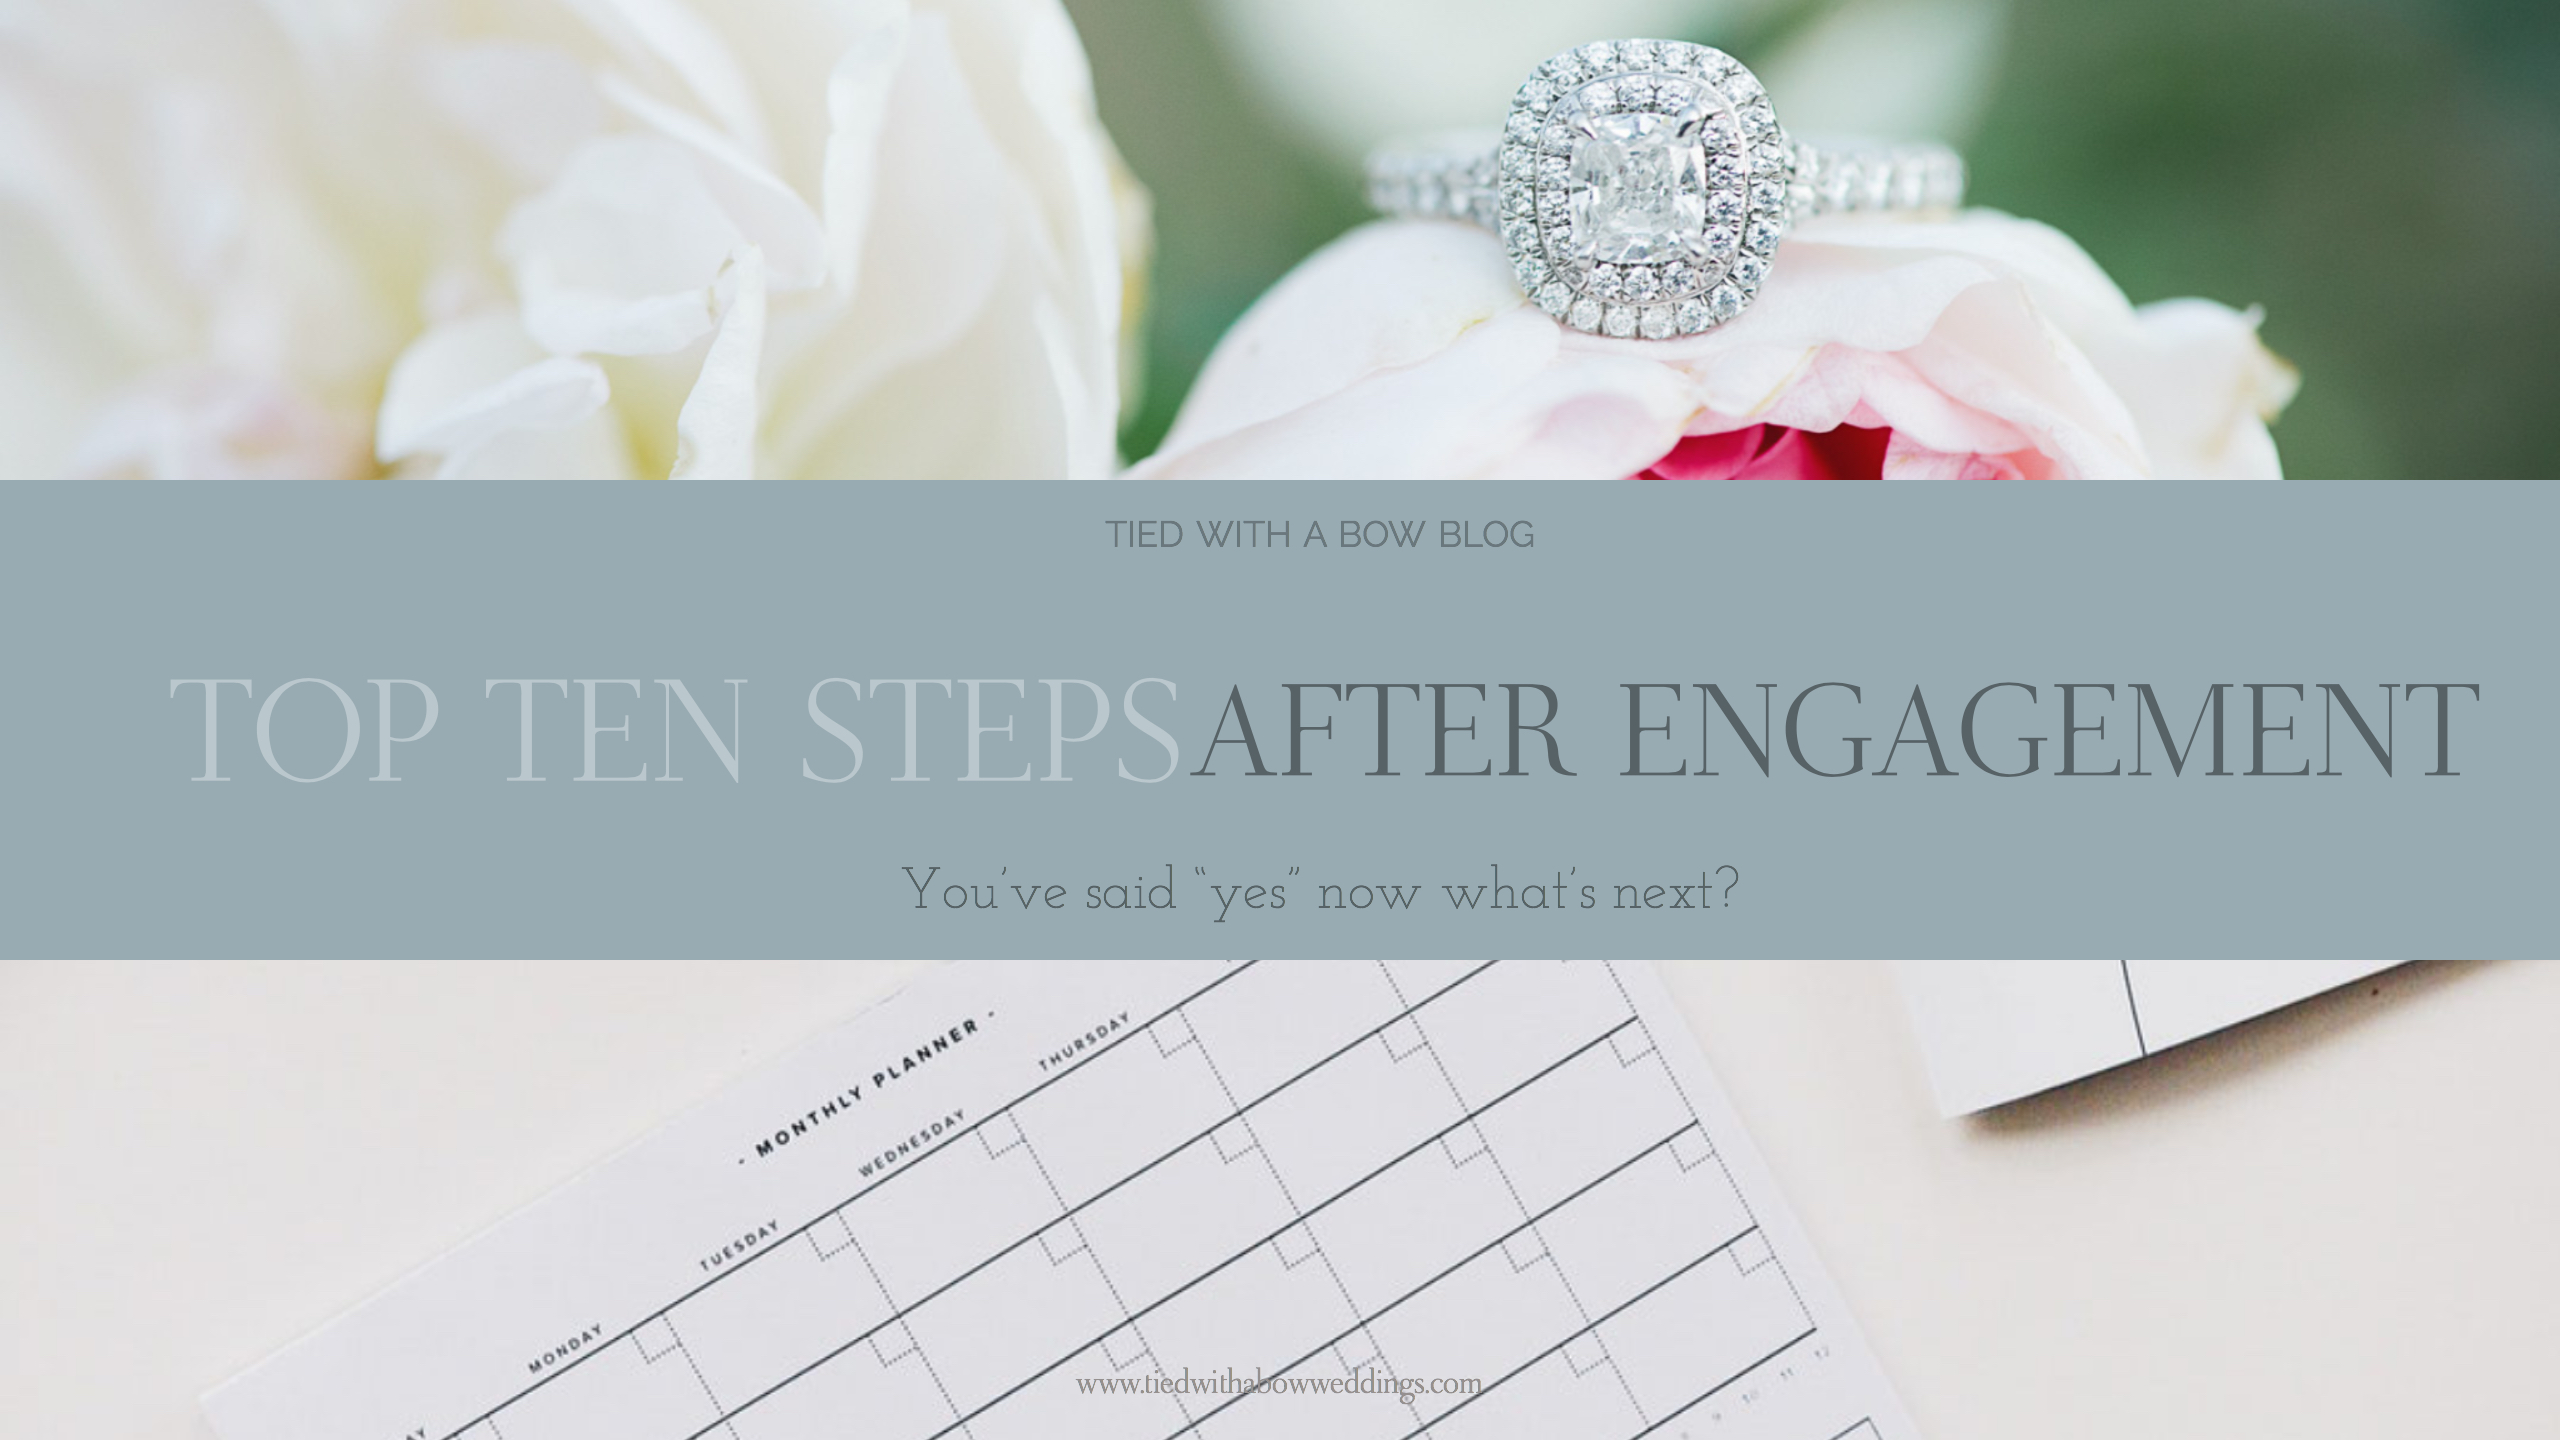 10 First Steps After Engagement - Tied with a Bow Weddings